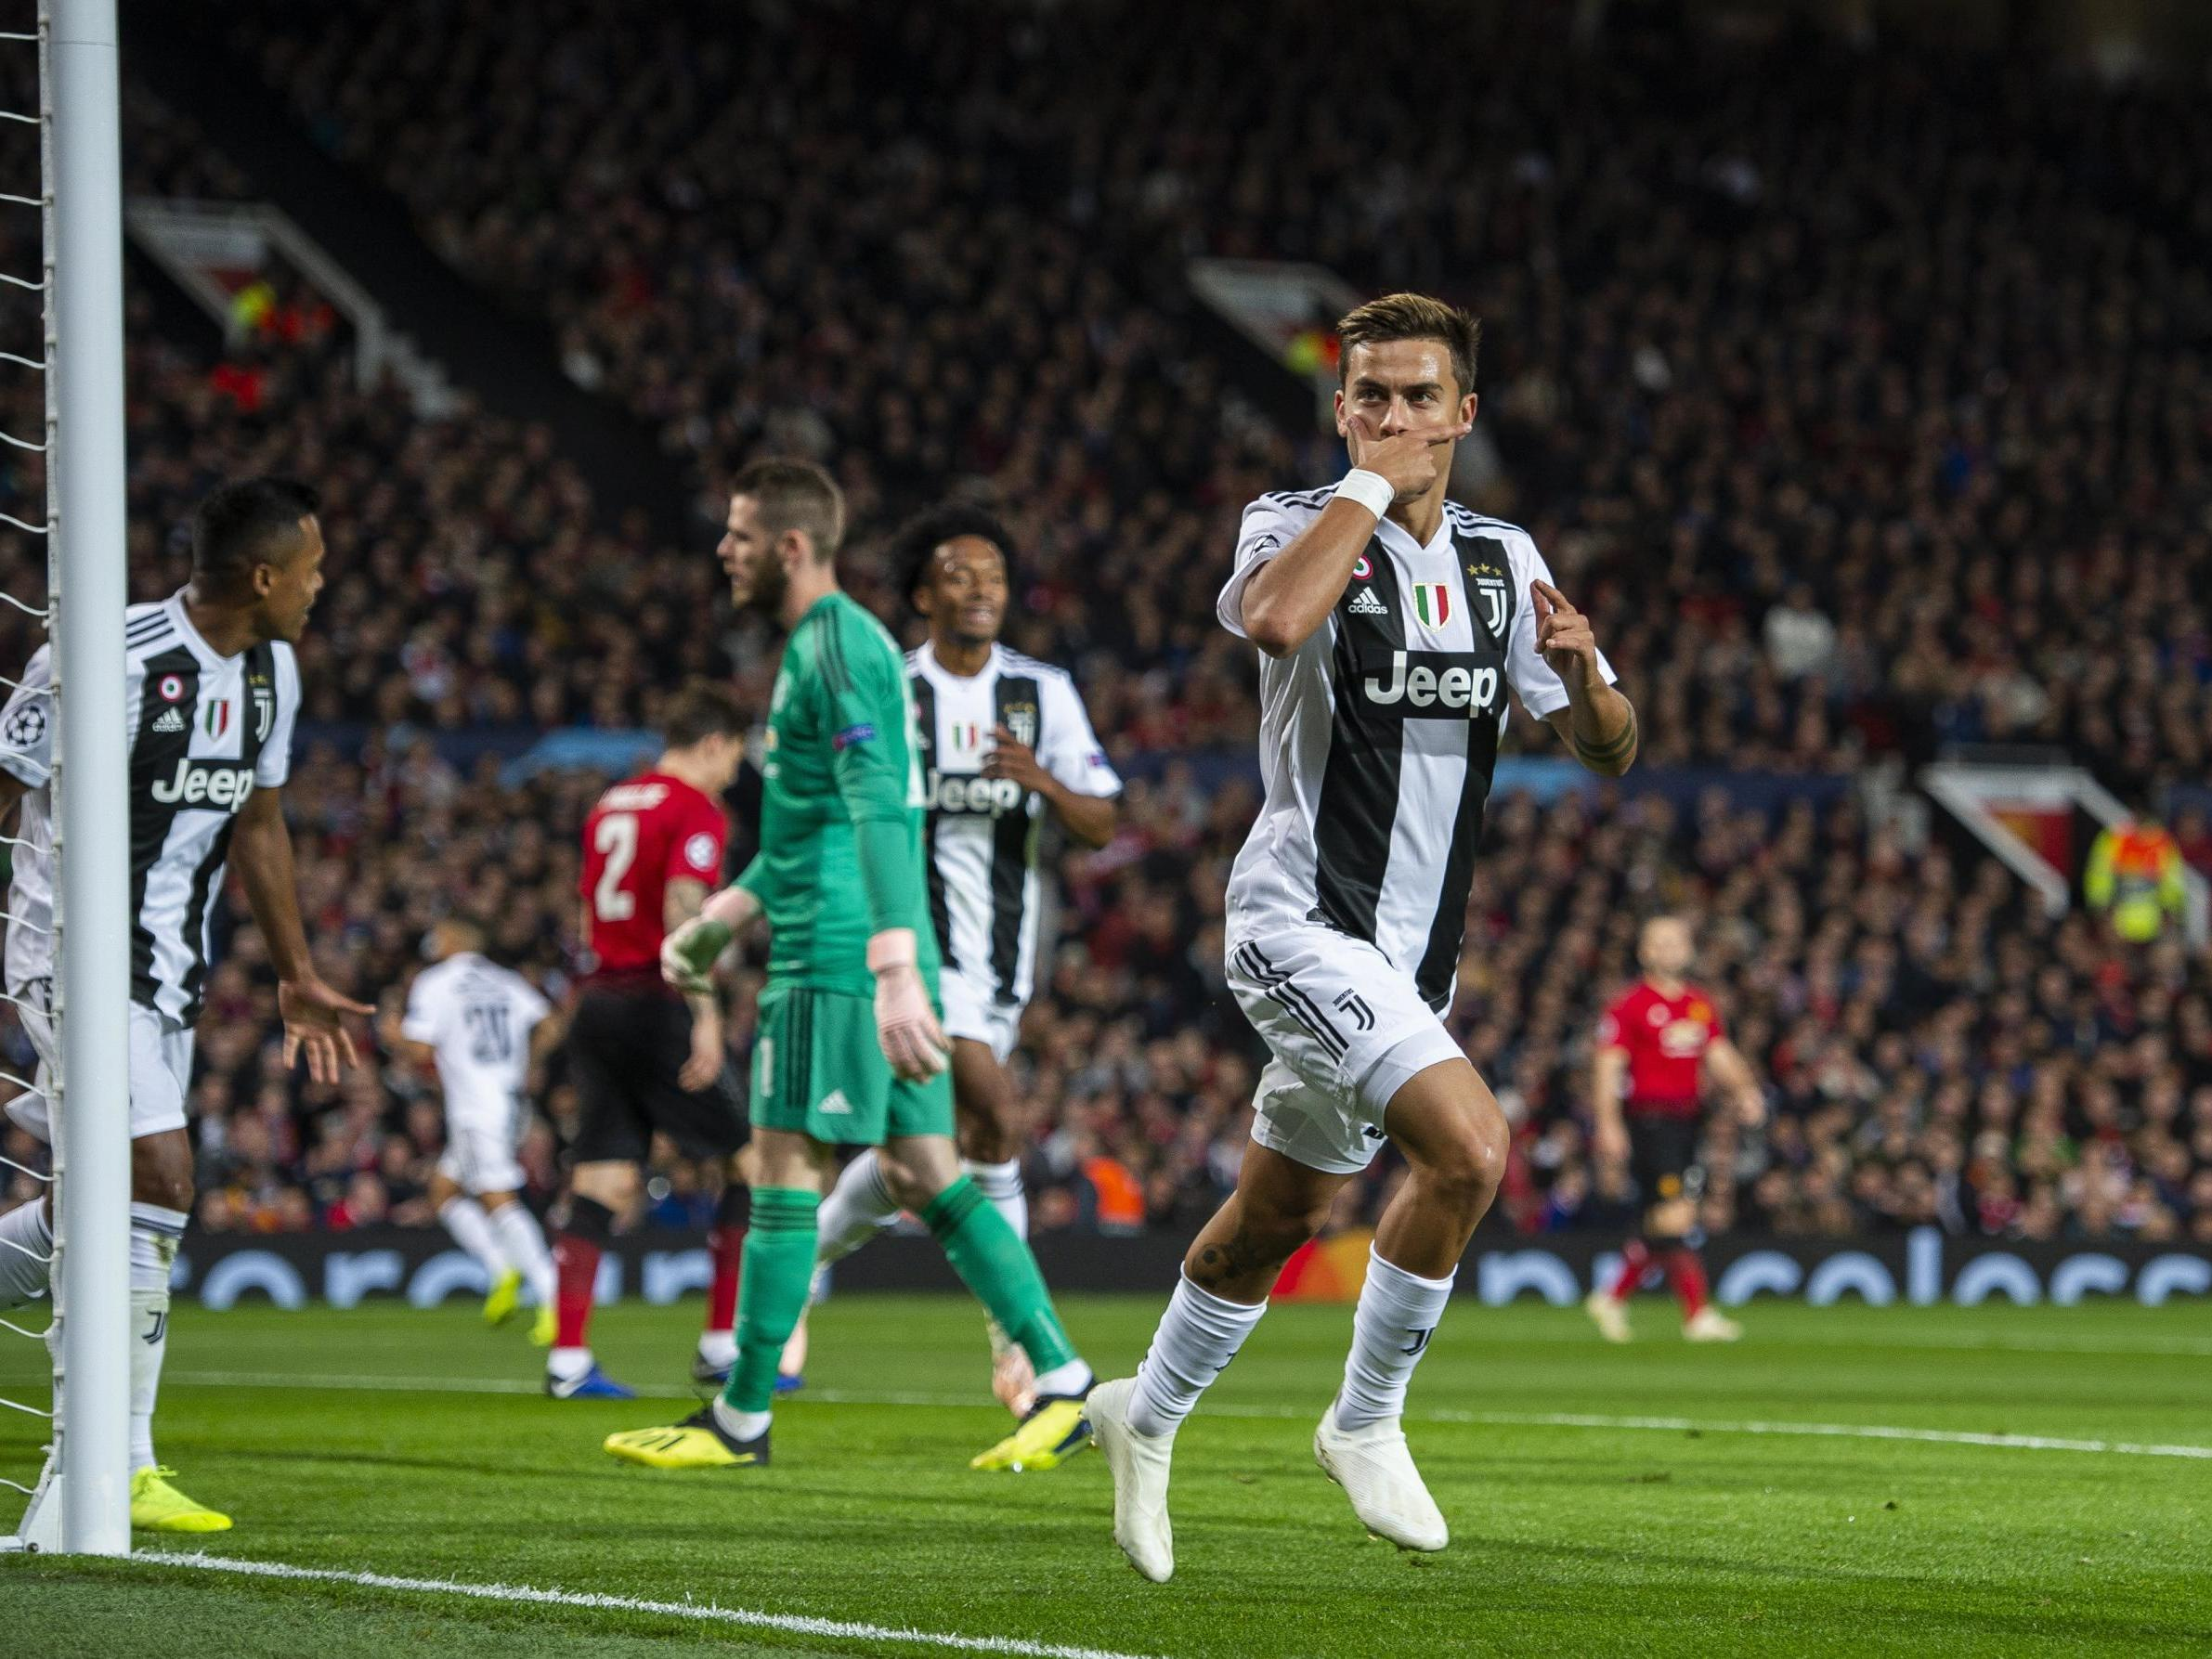 Manchester United 0-1 Juventus - five things we learned: regal centre-backs and repetitive Cristiano Ronaldo